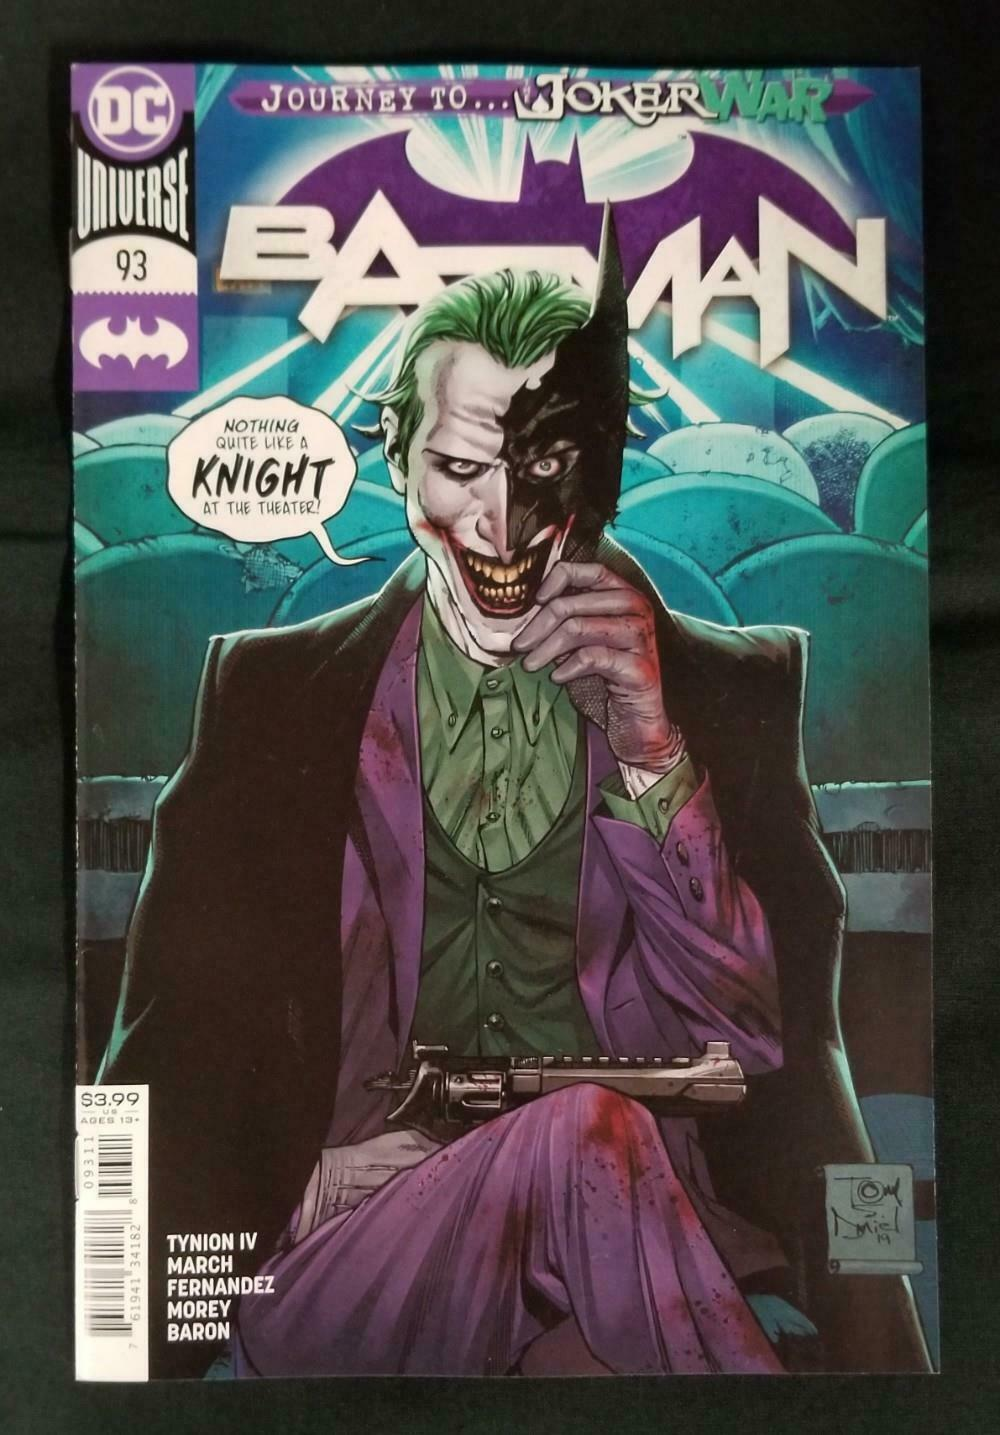 BATMAN #93 (JOKER WAR)